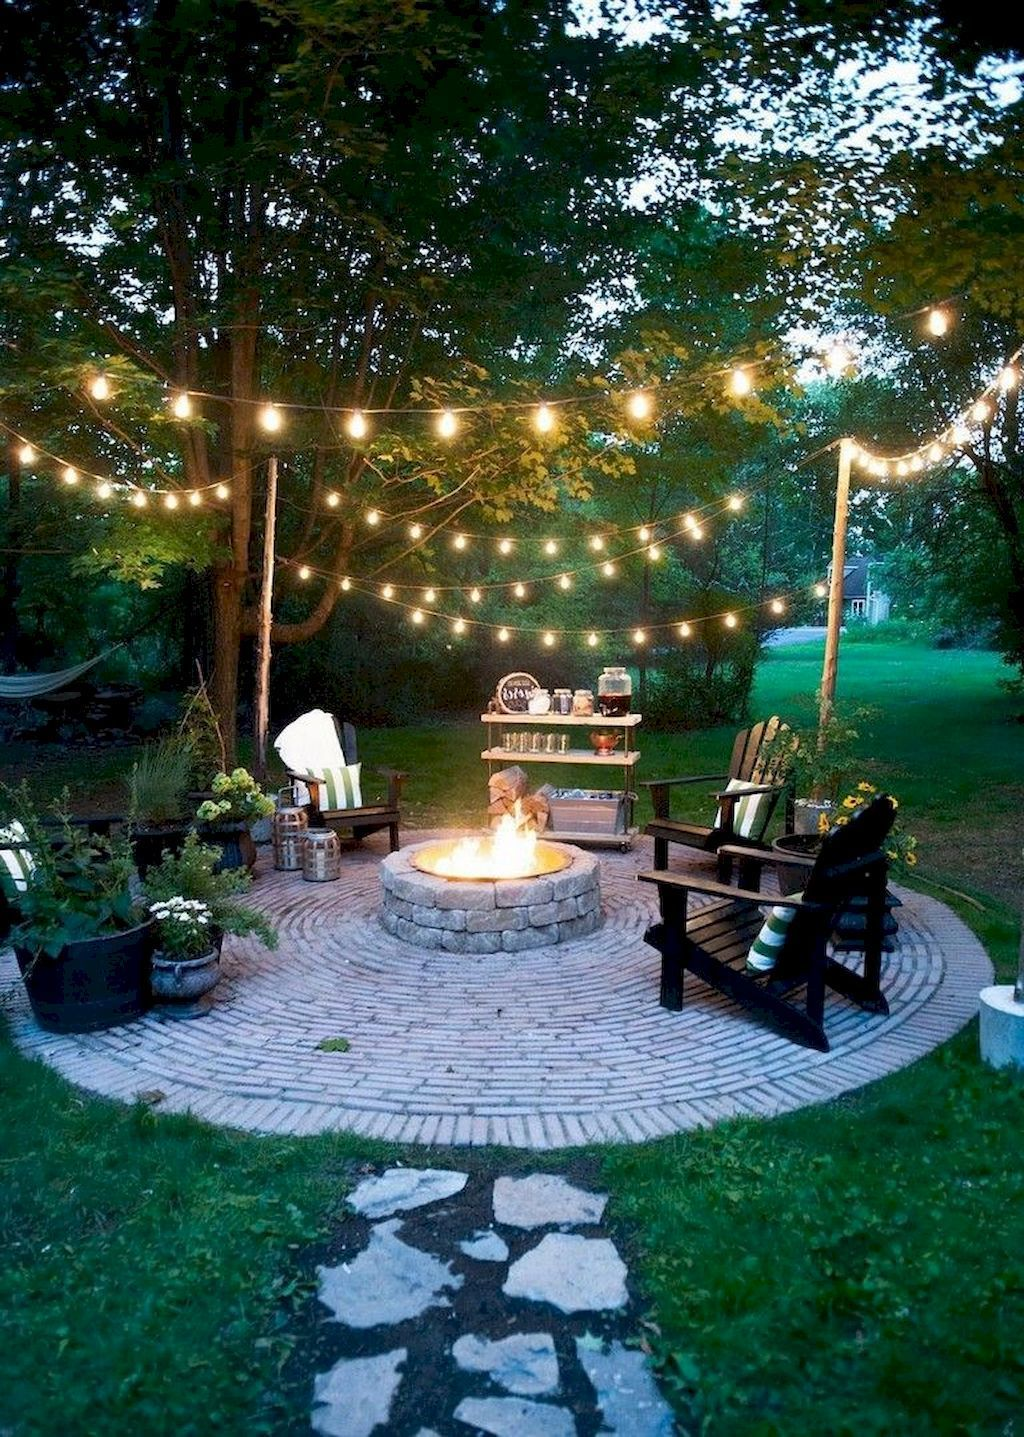 The Best Backyard Summer Party Decorating Ideas 20